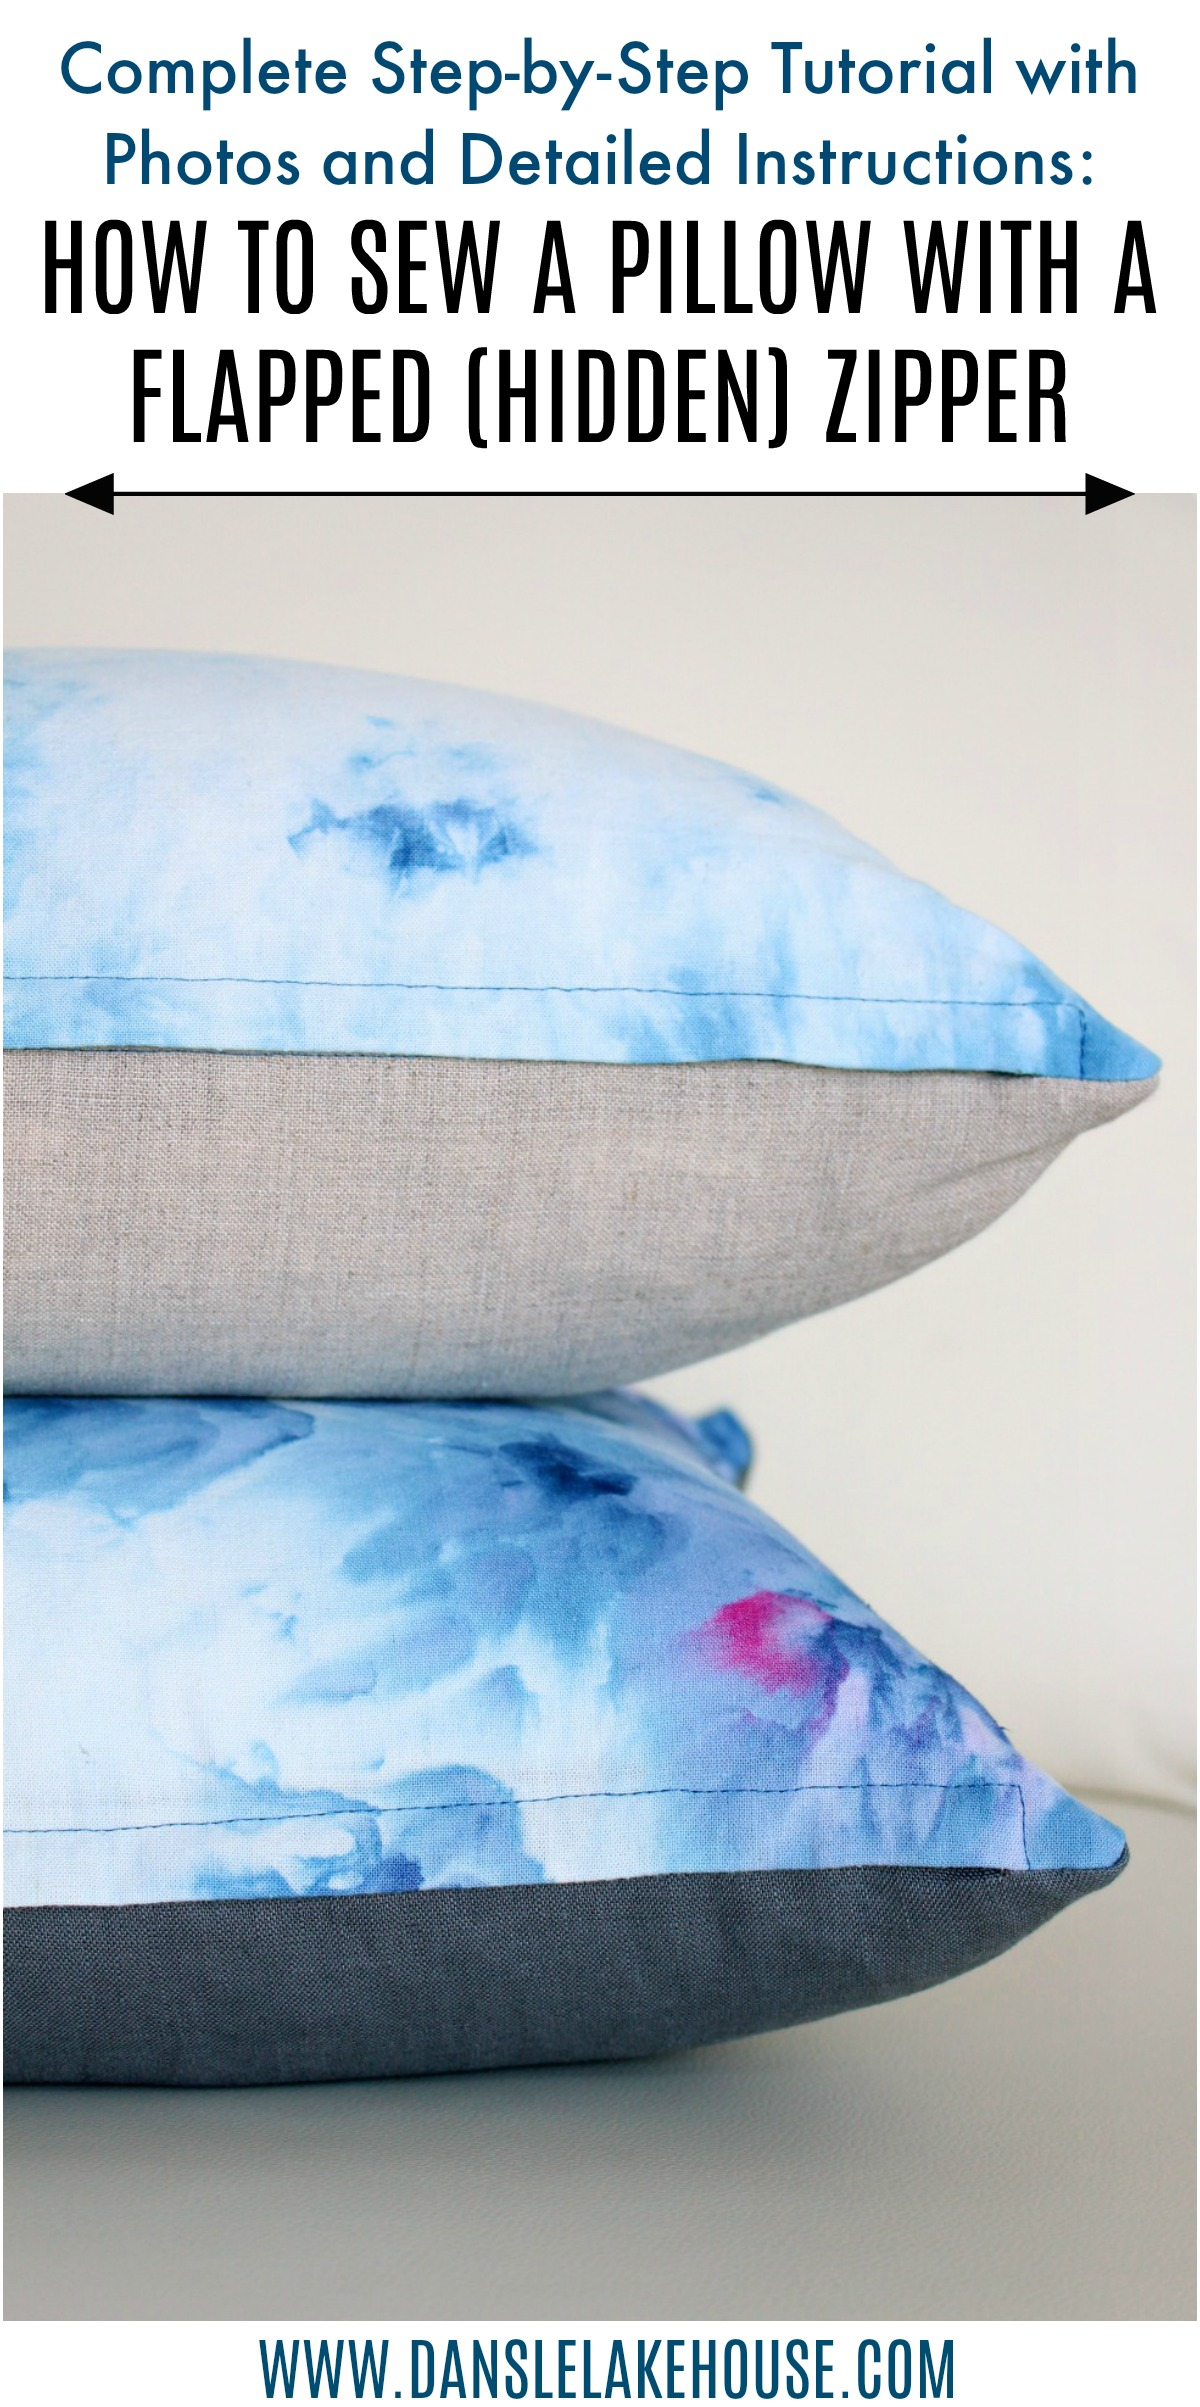 Learn How to Sew a Throw Pillow with a Zipper; How to Sew a Flapped (Hidden) Zipper. Complete and detailed tutorial with photos and instructions #diypillow #sewingtutorial #diy